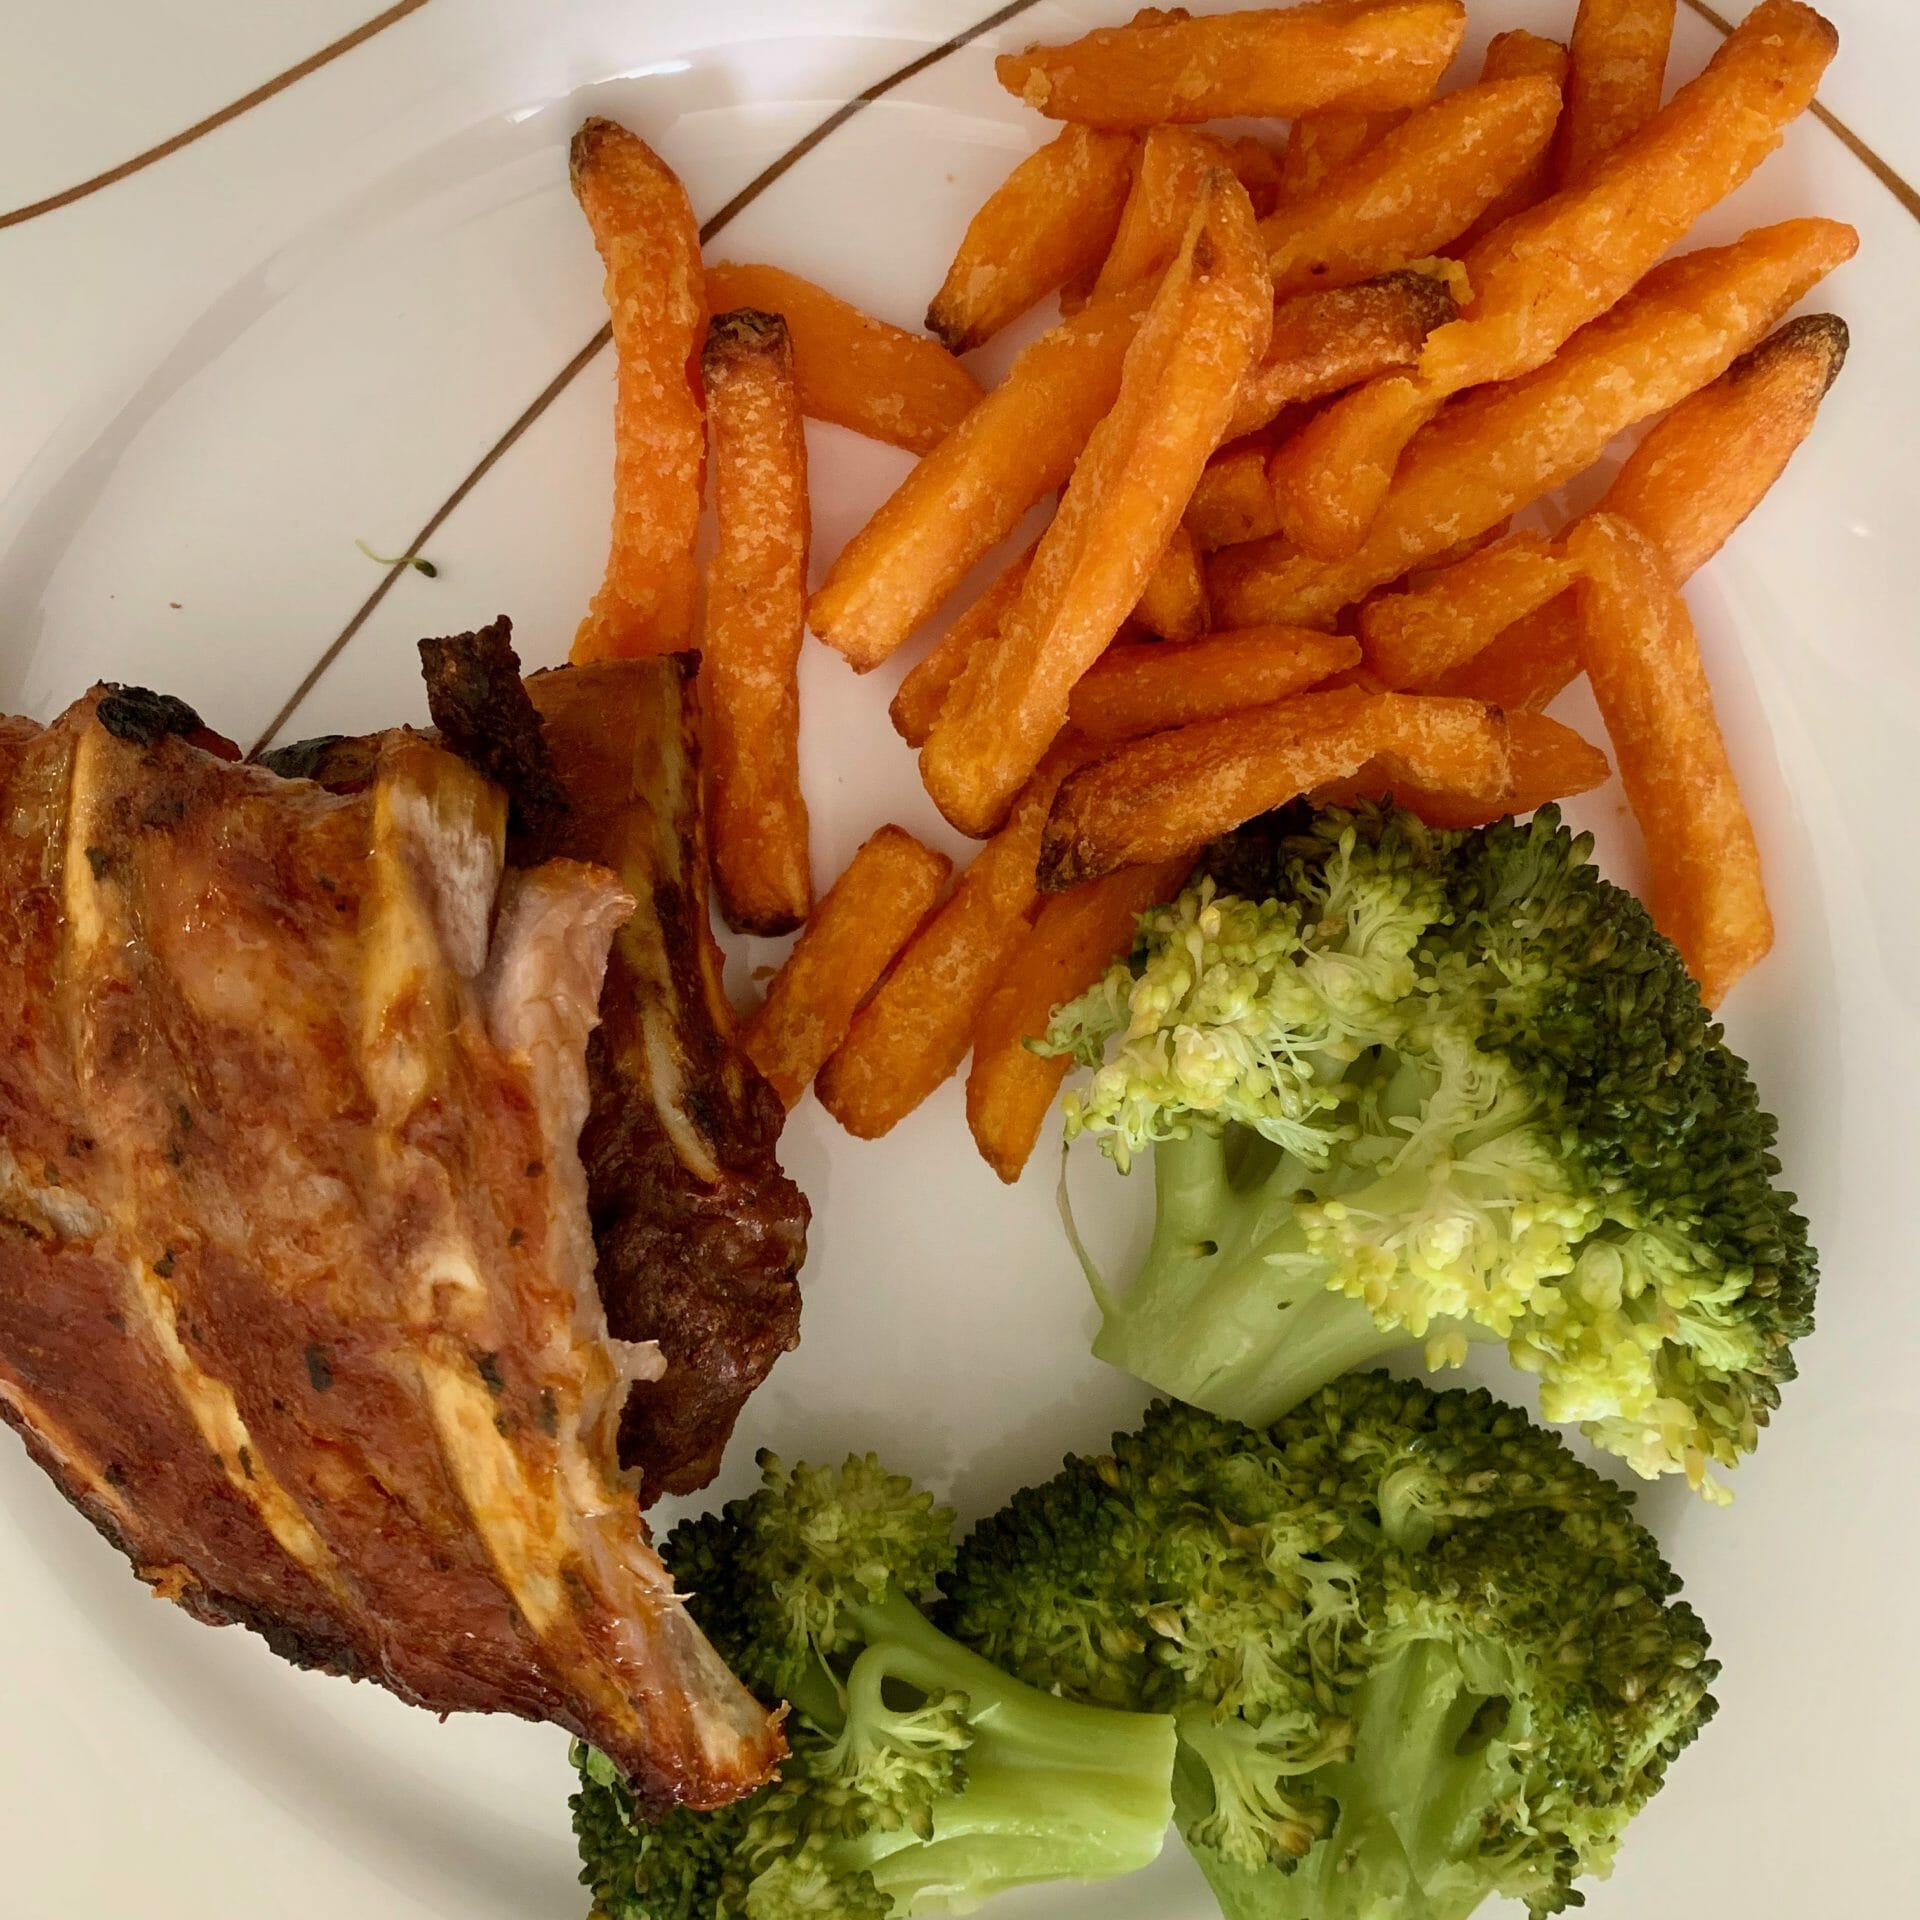 Ribs with sweet potato fries and broccoli